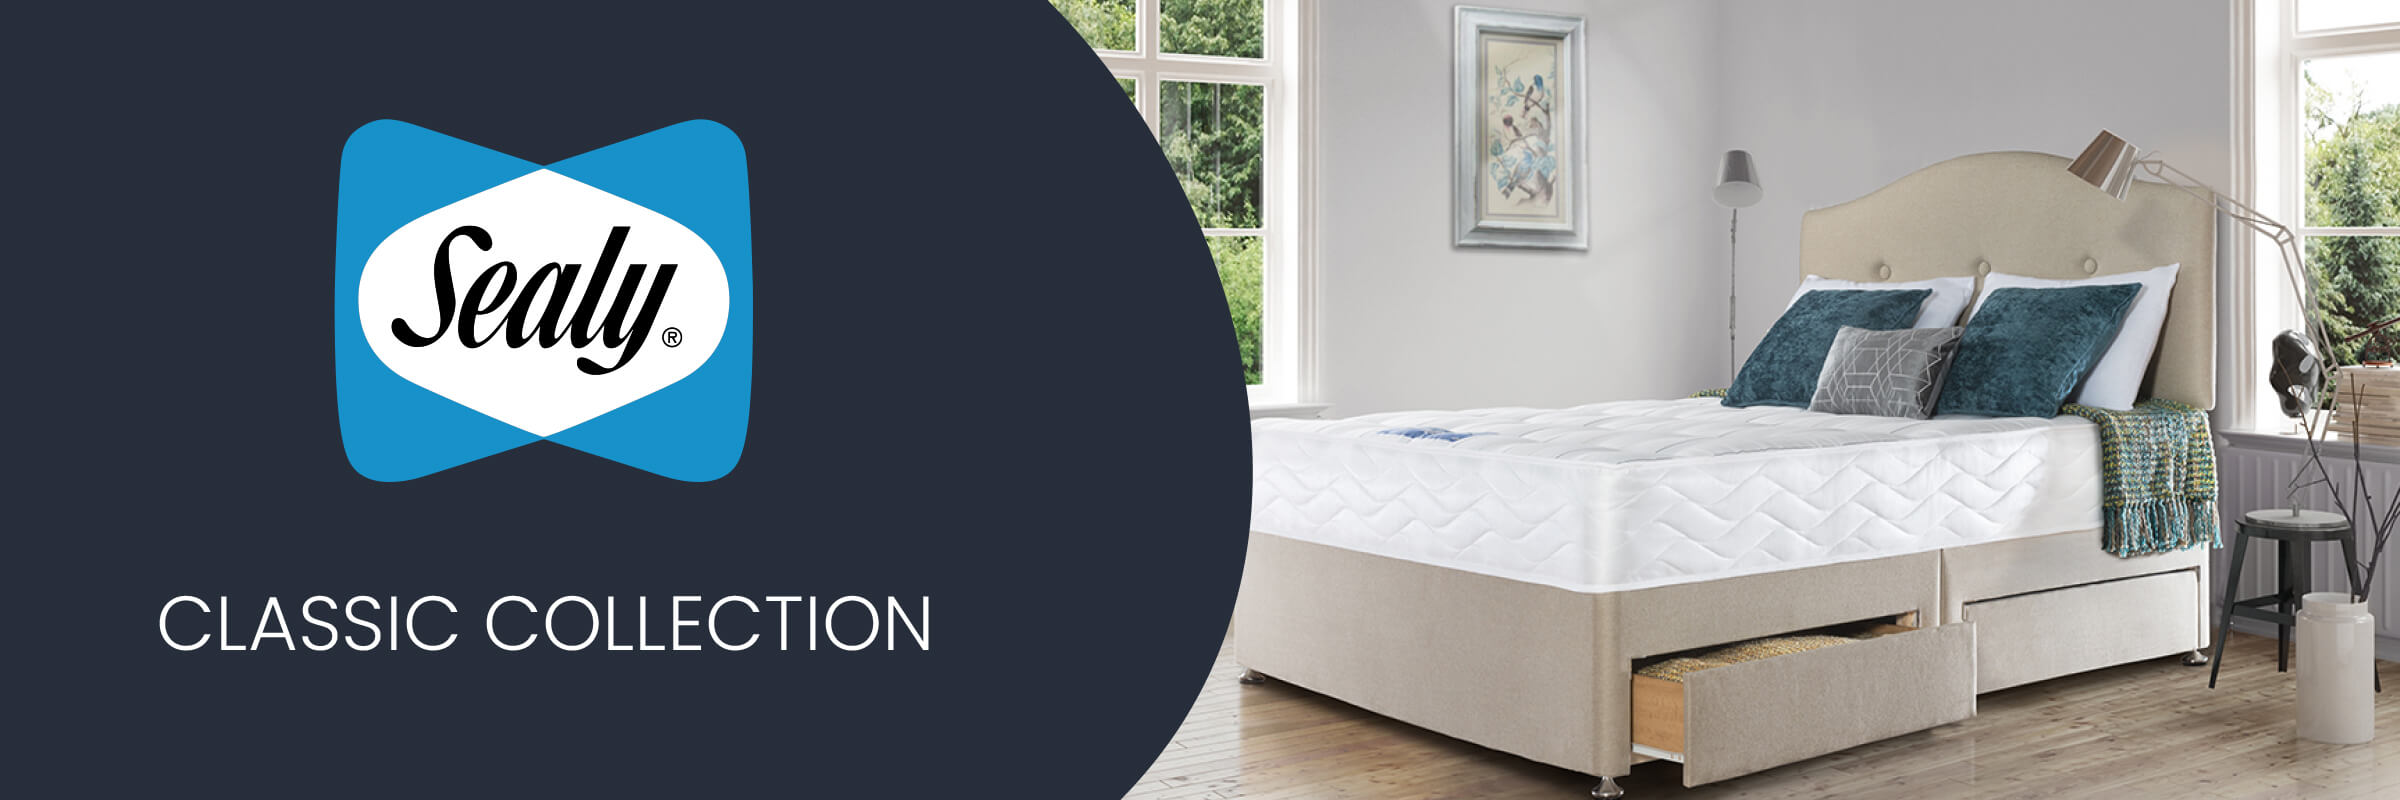 Sealy Classic Collection Mattresses at Mattress Online